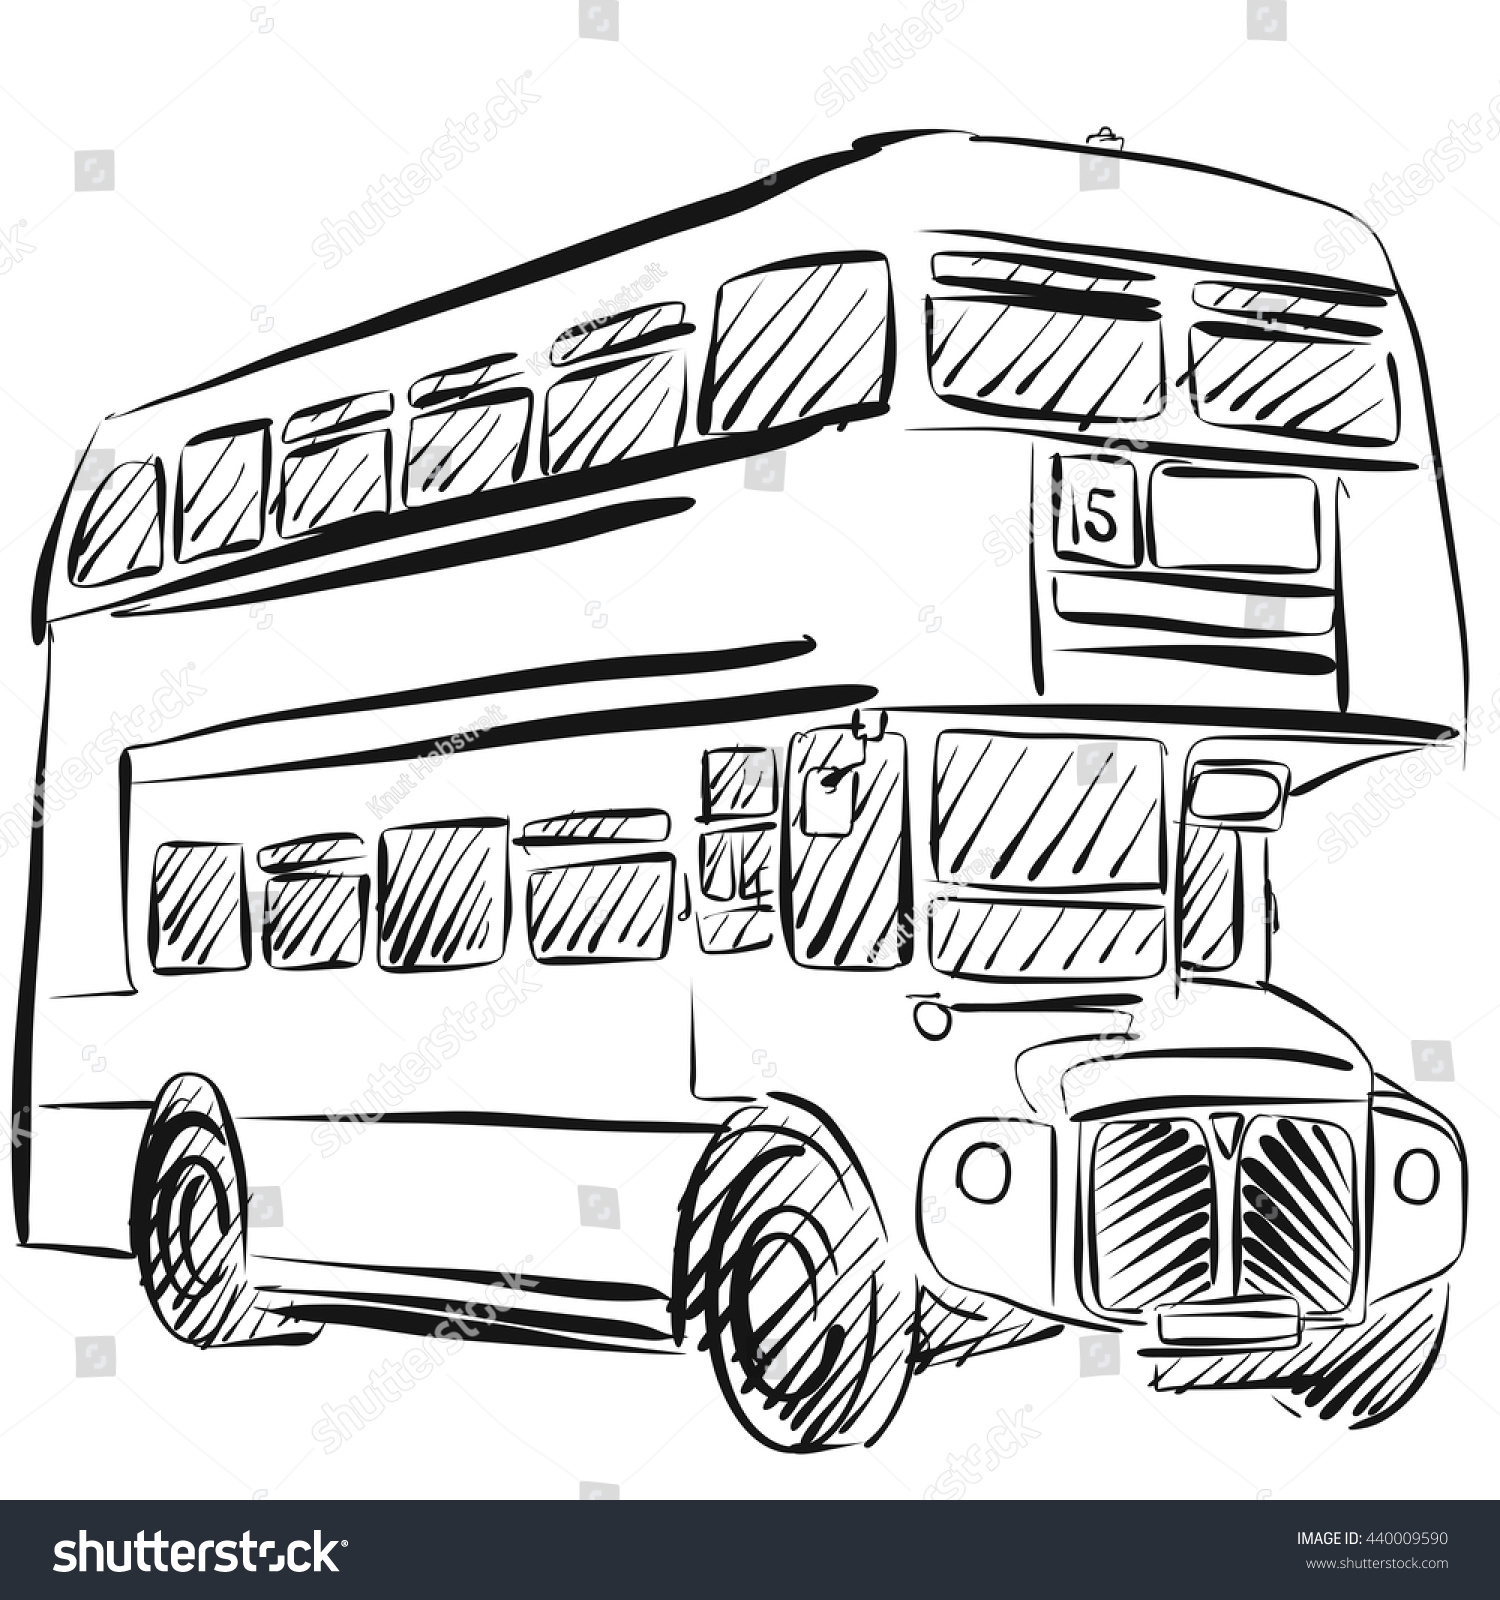 London Bus Freehand Sketch Vector Outline